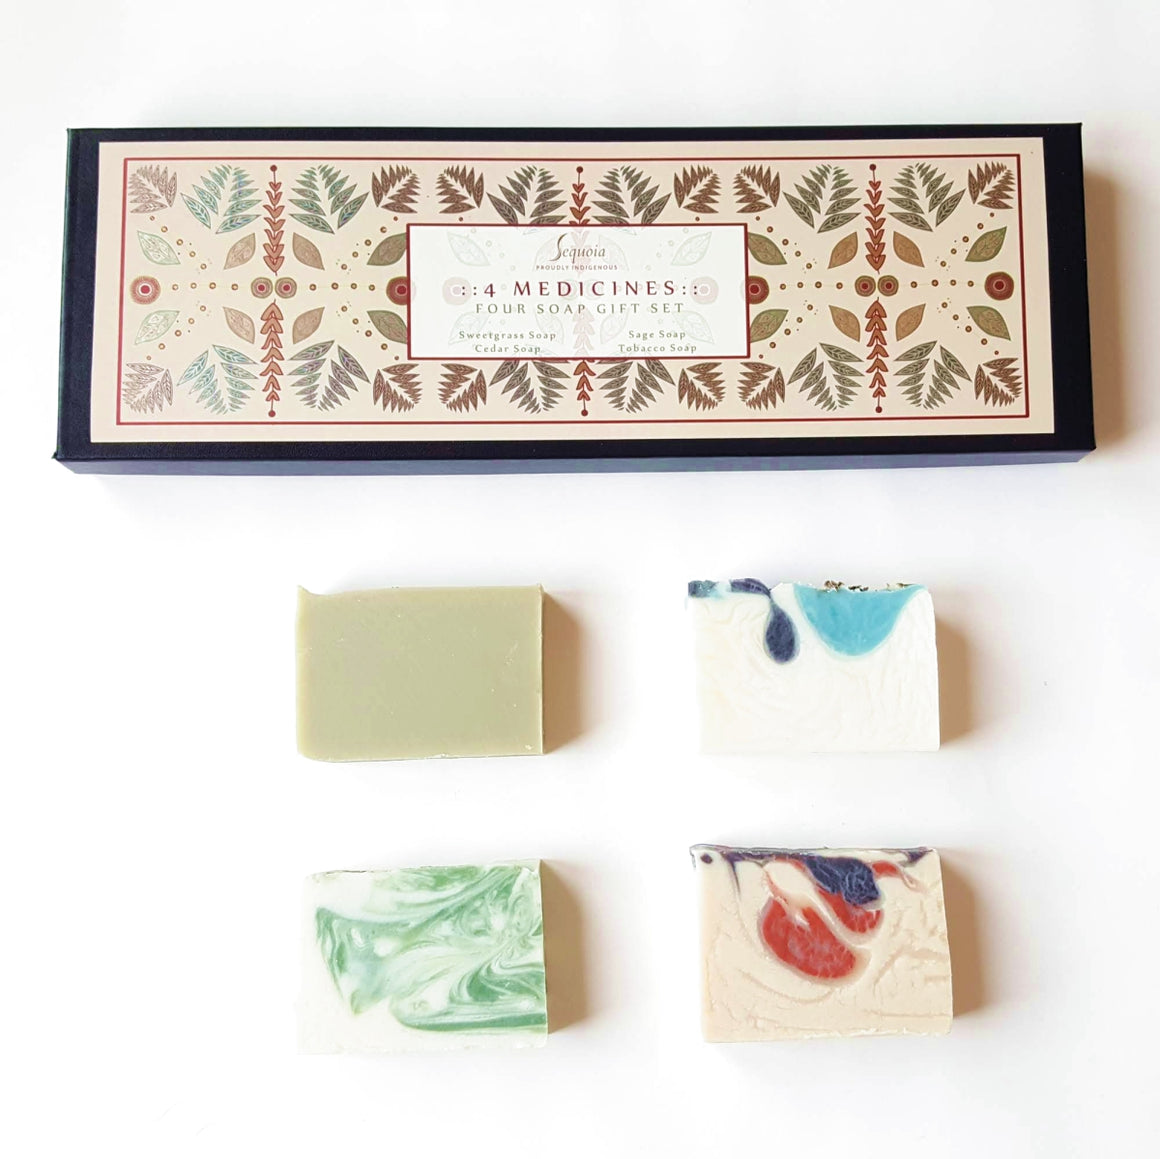 Four Medicines Four Soap Gift Set